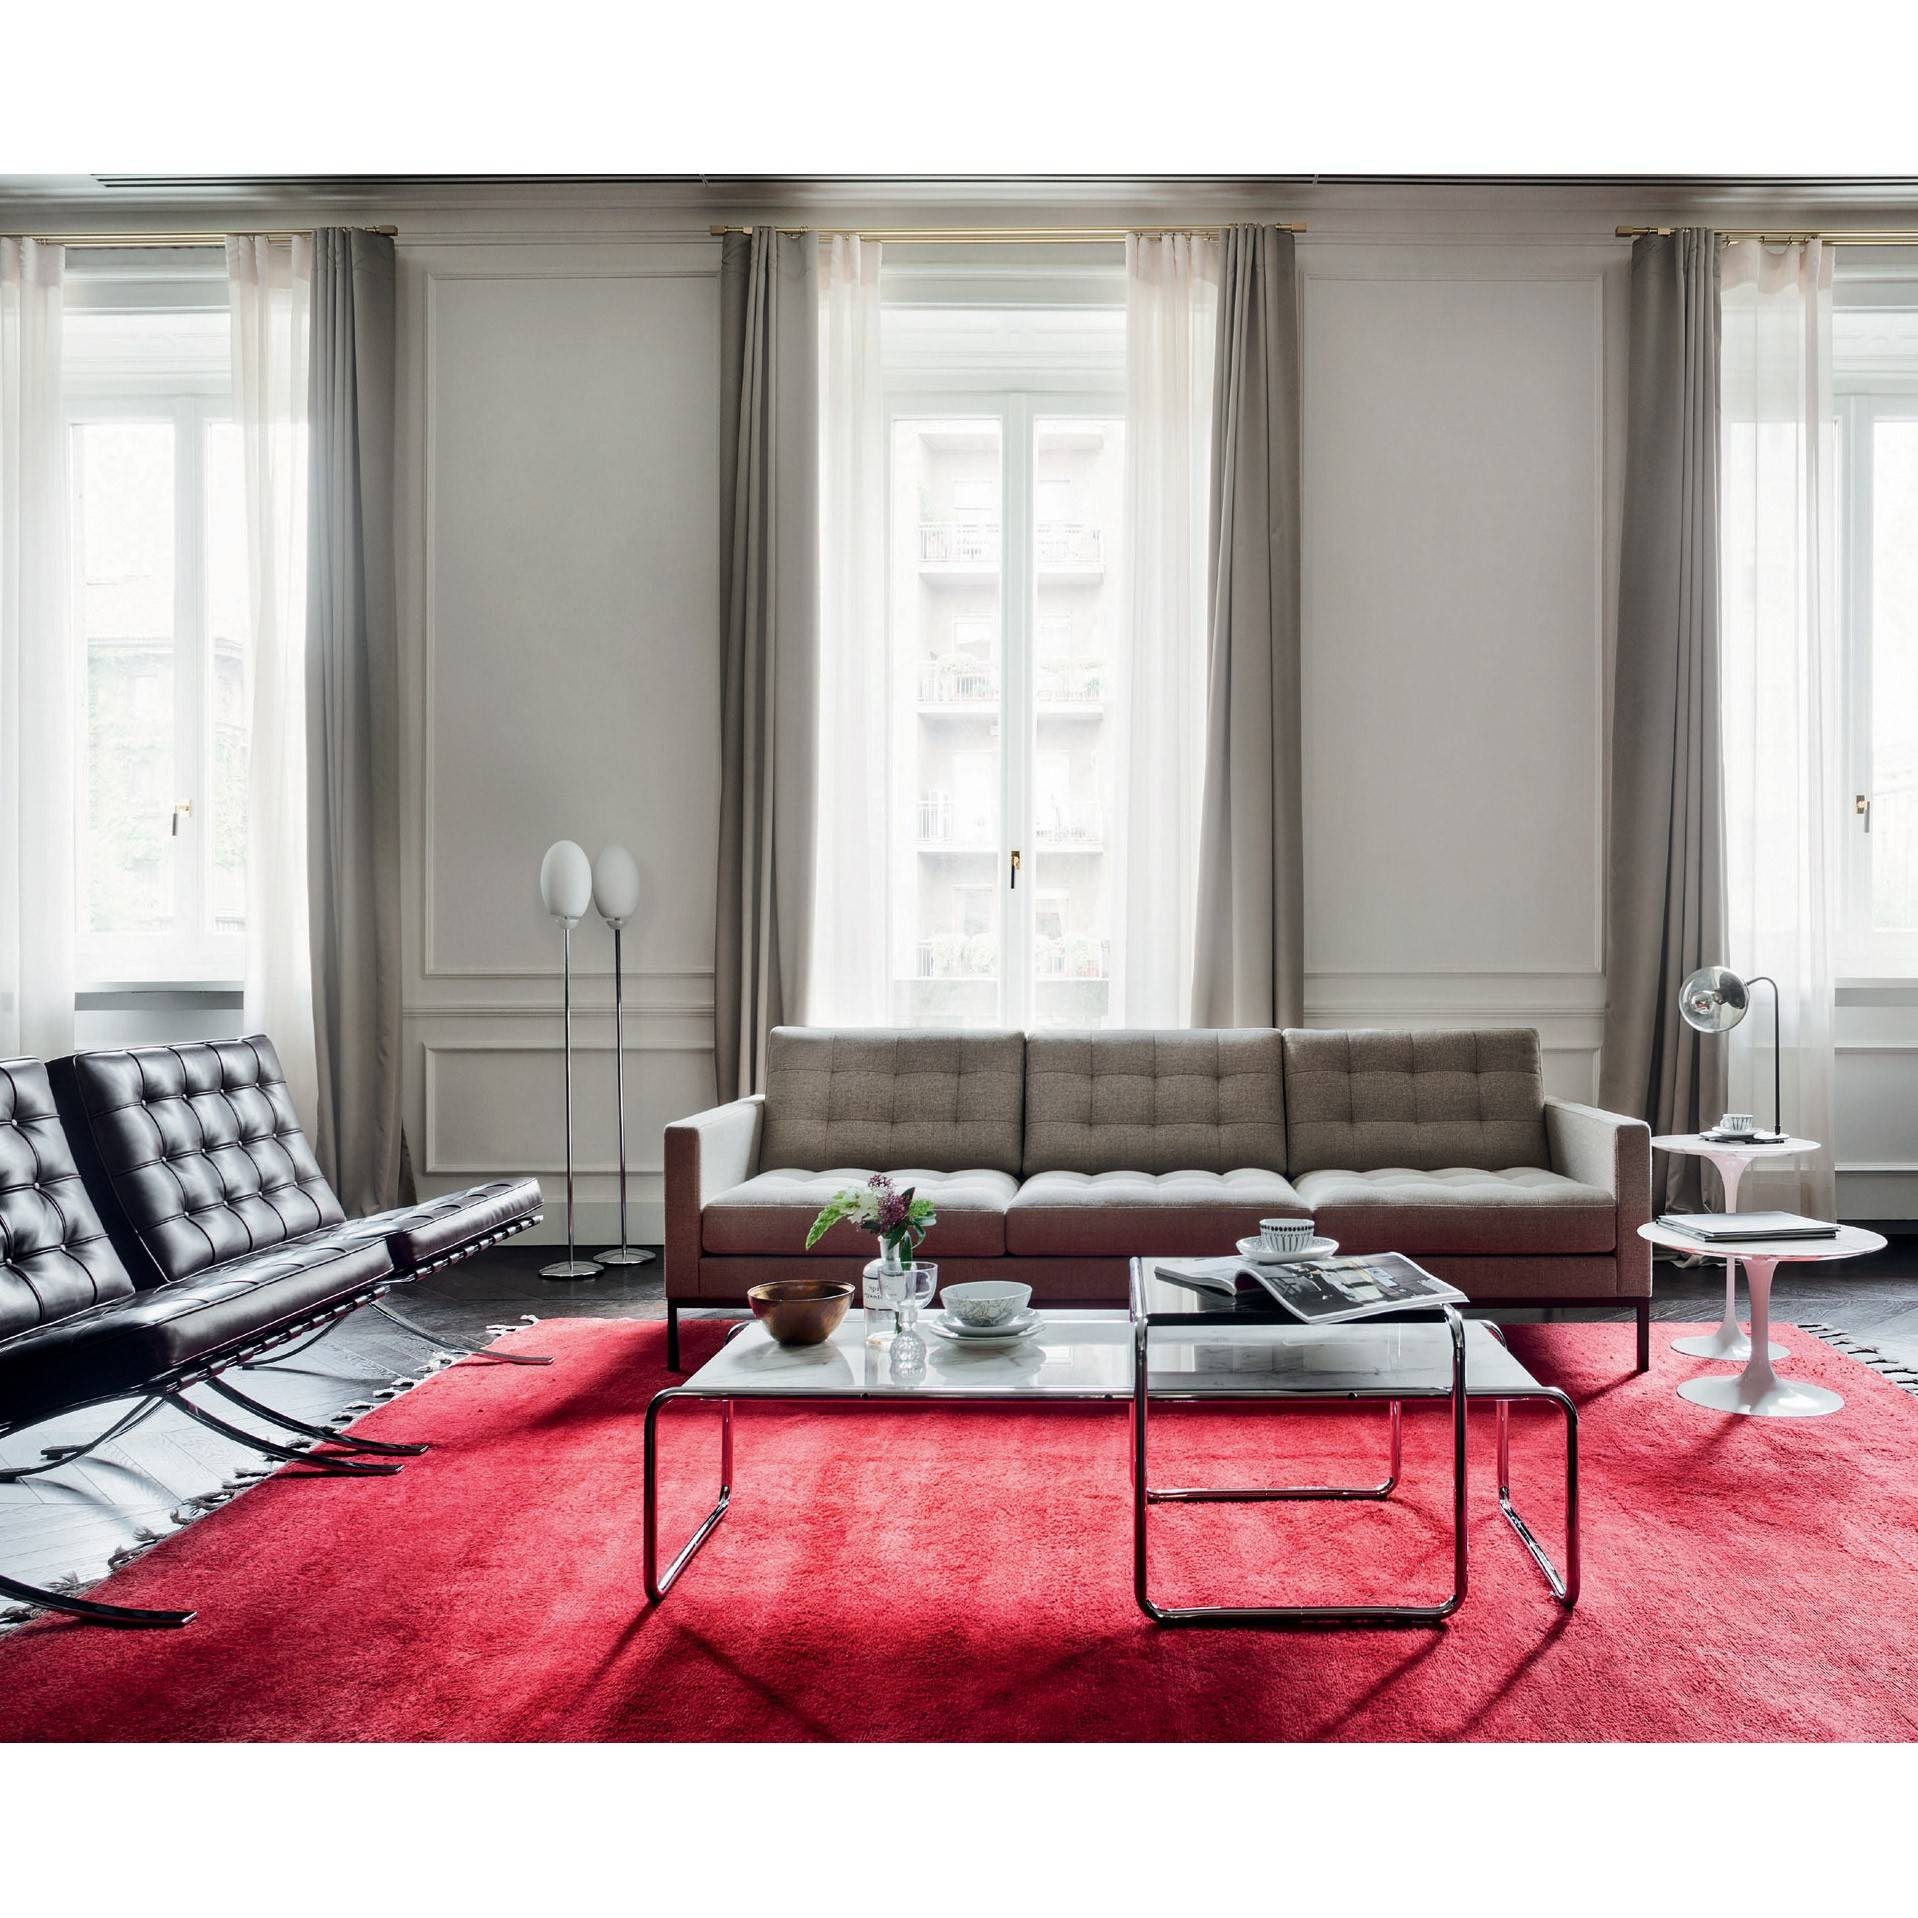 Florence Knoll 'relax' Sofa | Skandium pertaining to Florence Sofas And Loveseats (Image 2 of 25)